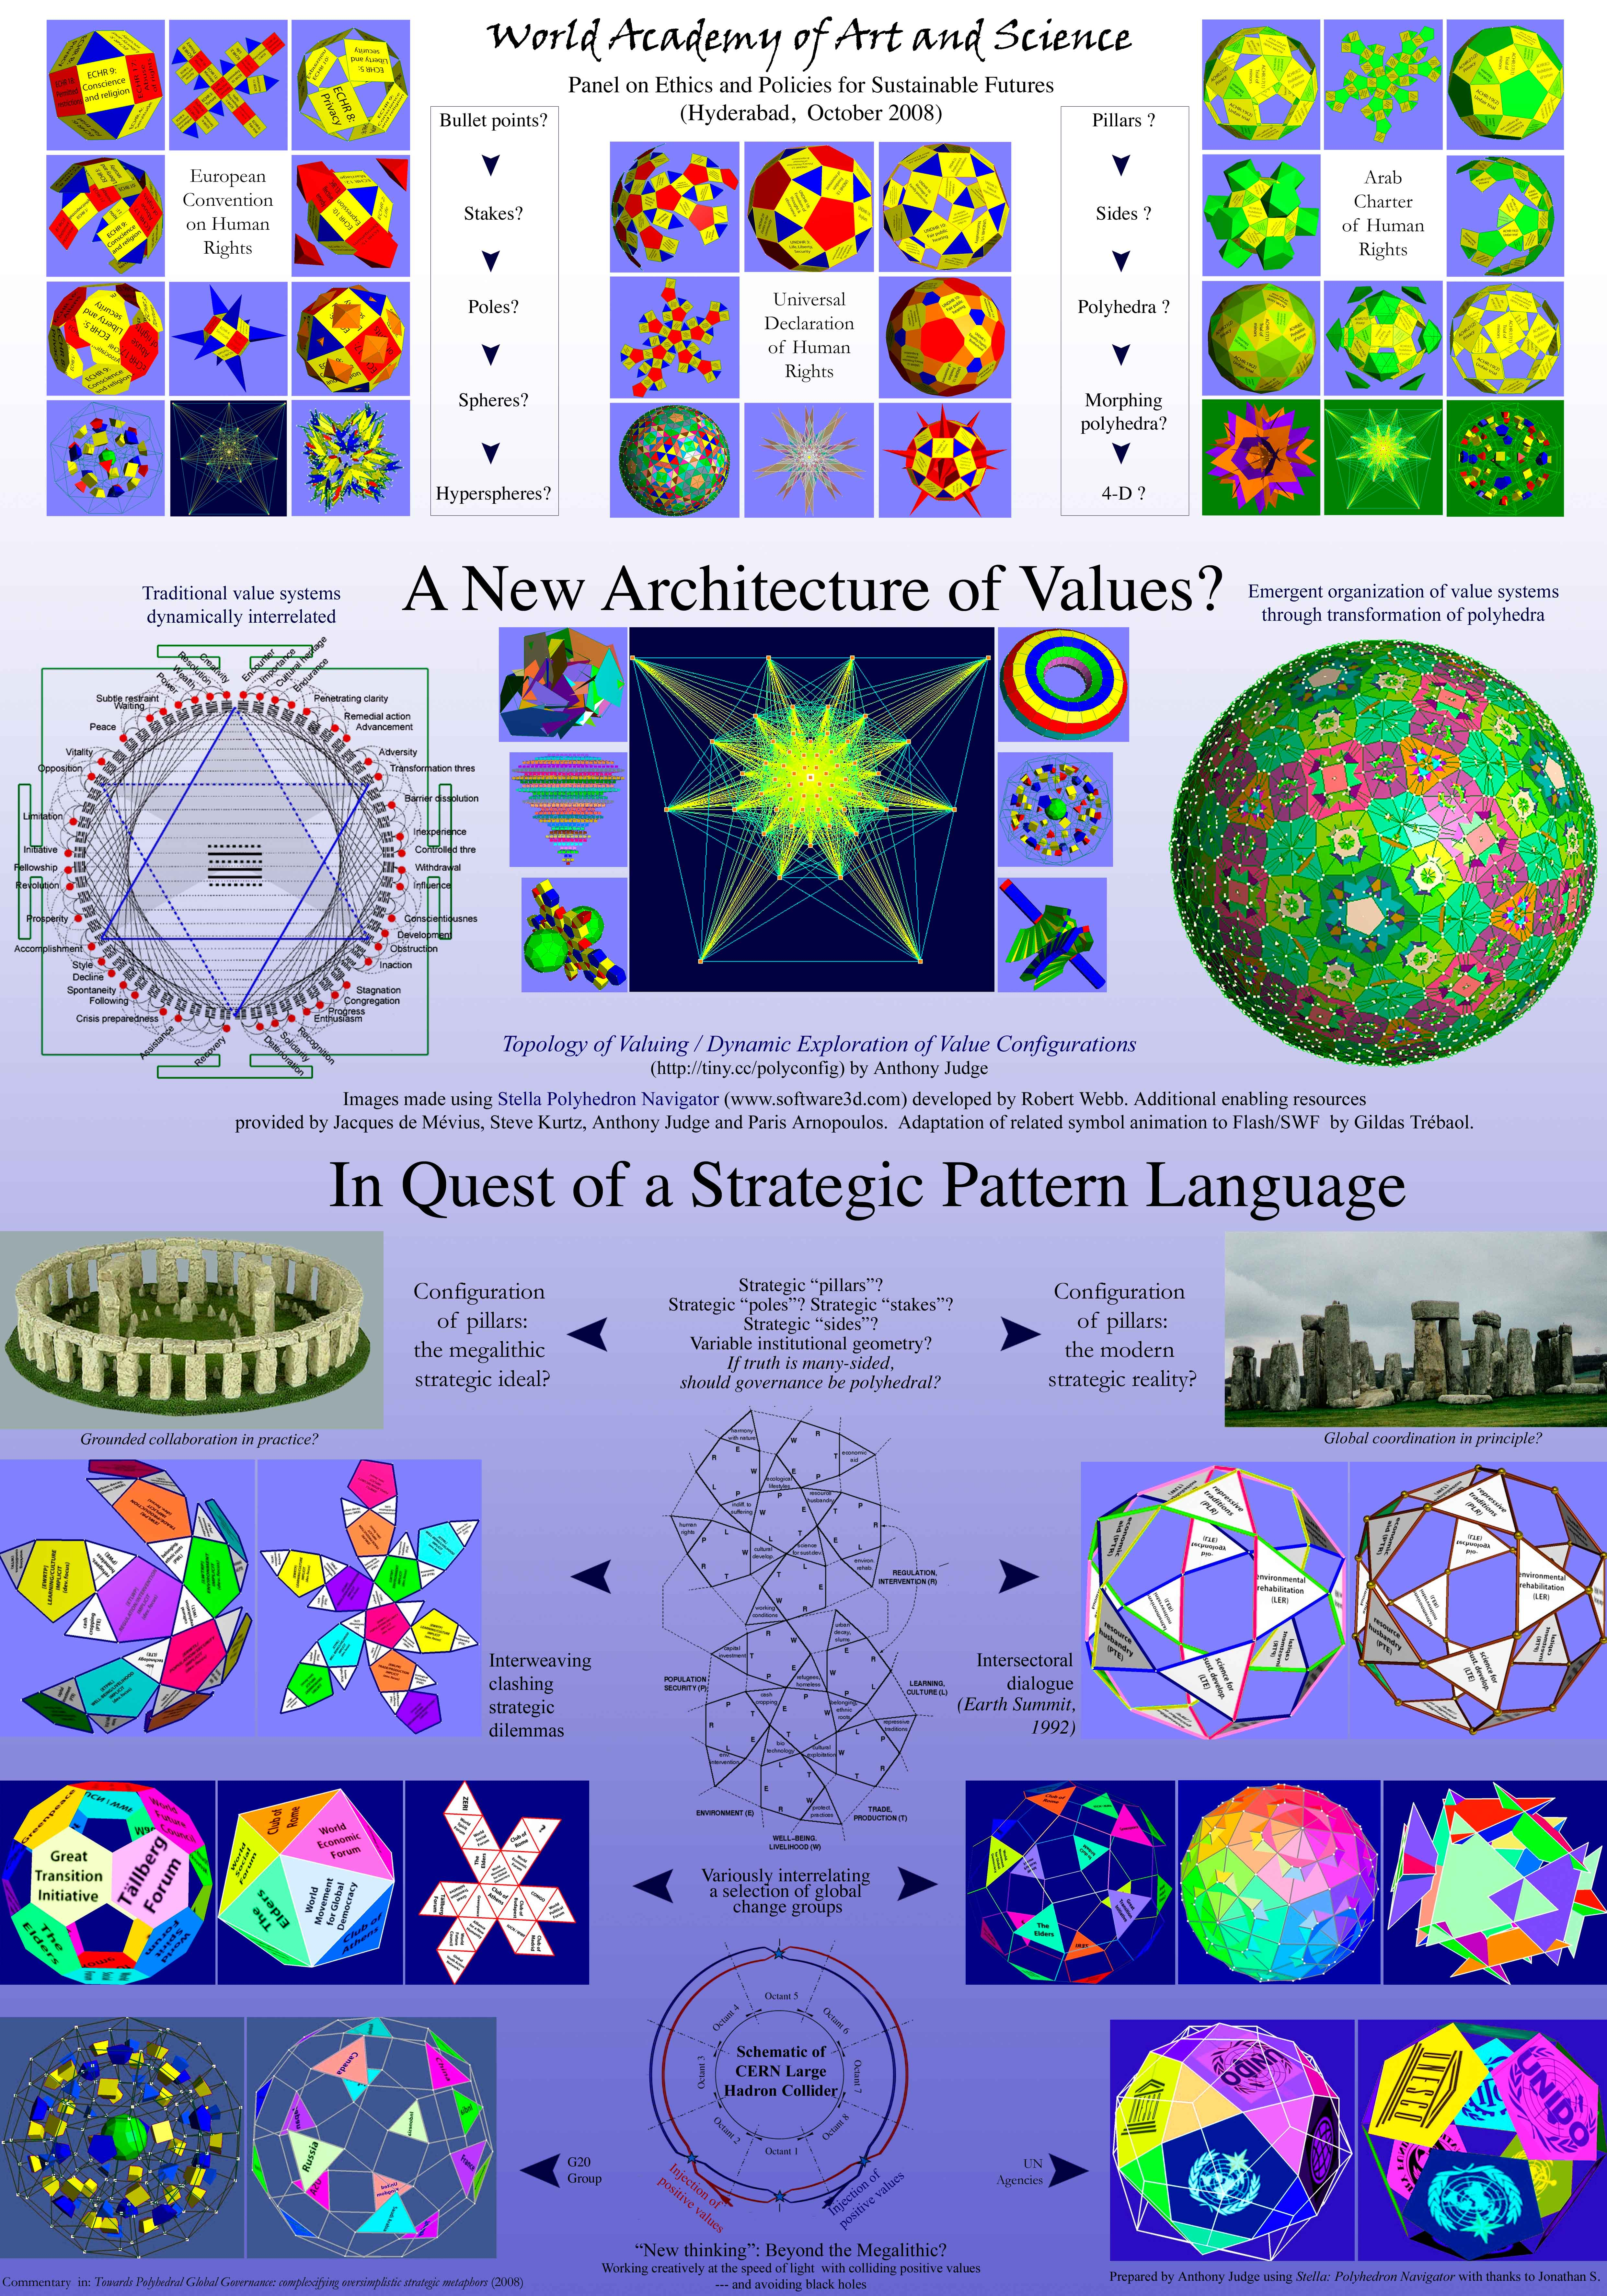 Strategic Pattern Language